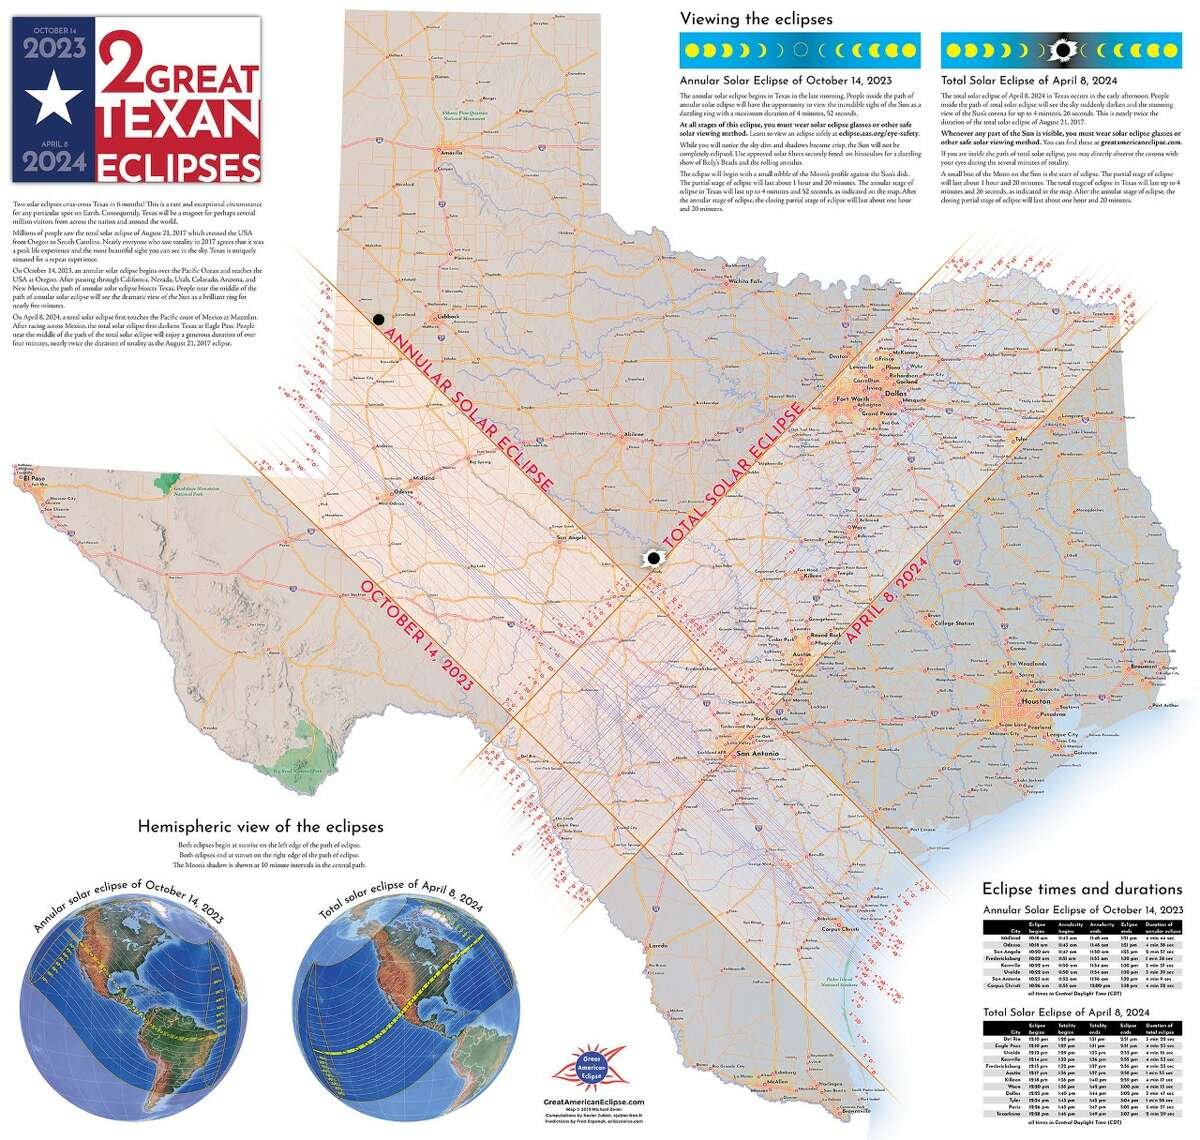 Geographer Michael Zeiler, who provides the graphics for the Great American Eclipse website, shared these maps of the April 8, 2024 total solar eclipse's path. The graphics show the eclipse's precise movement through the city.